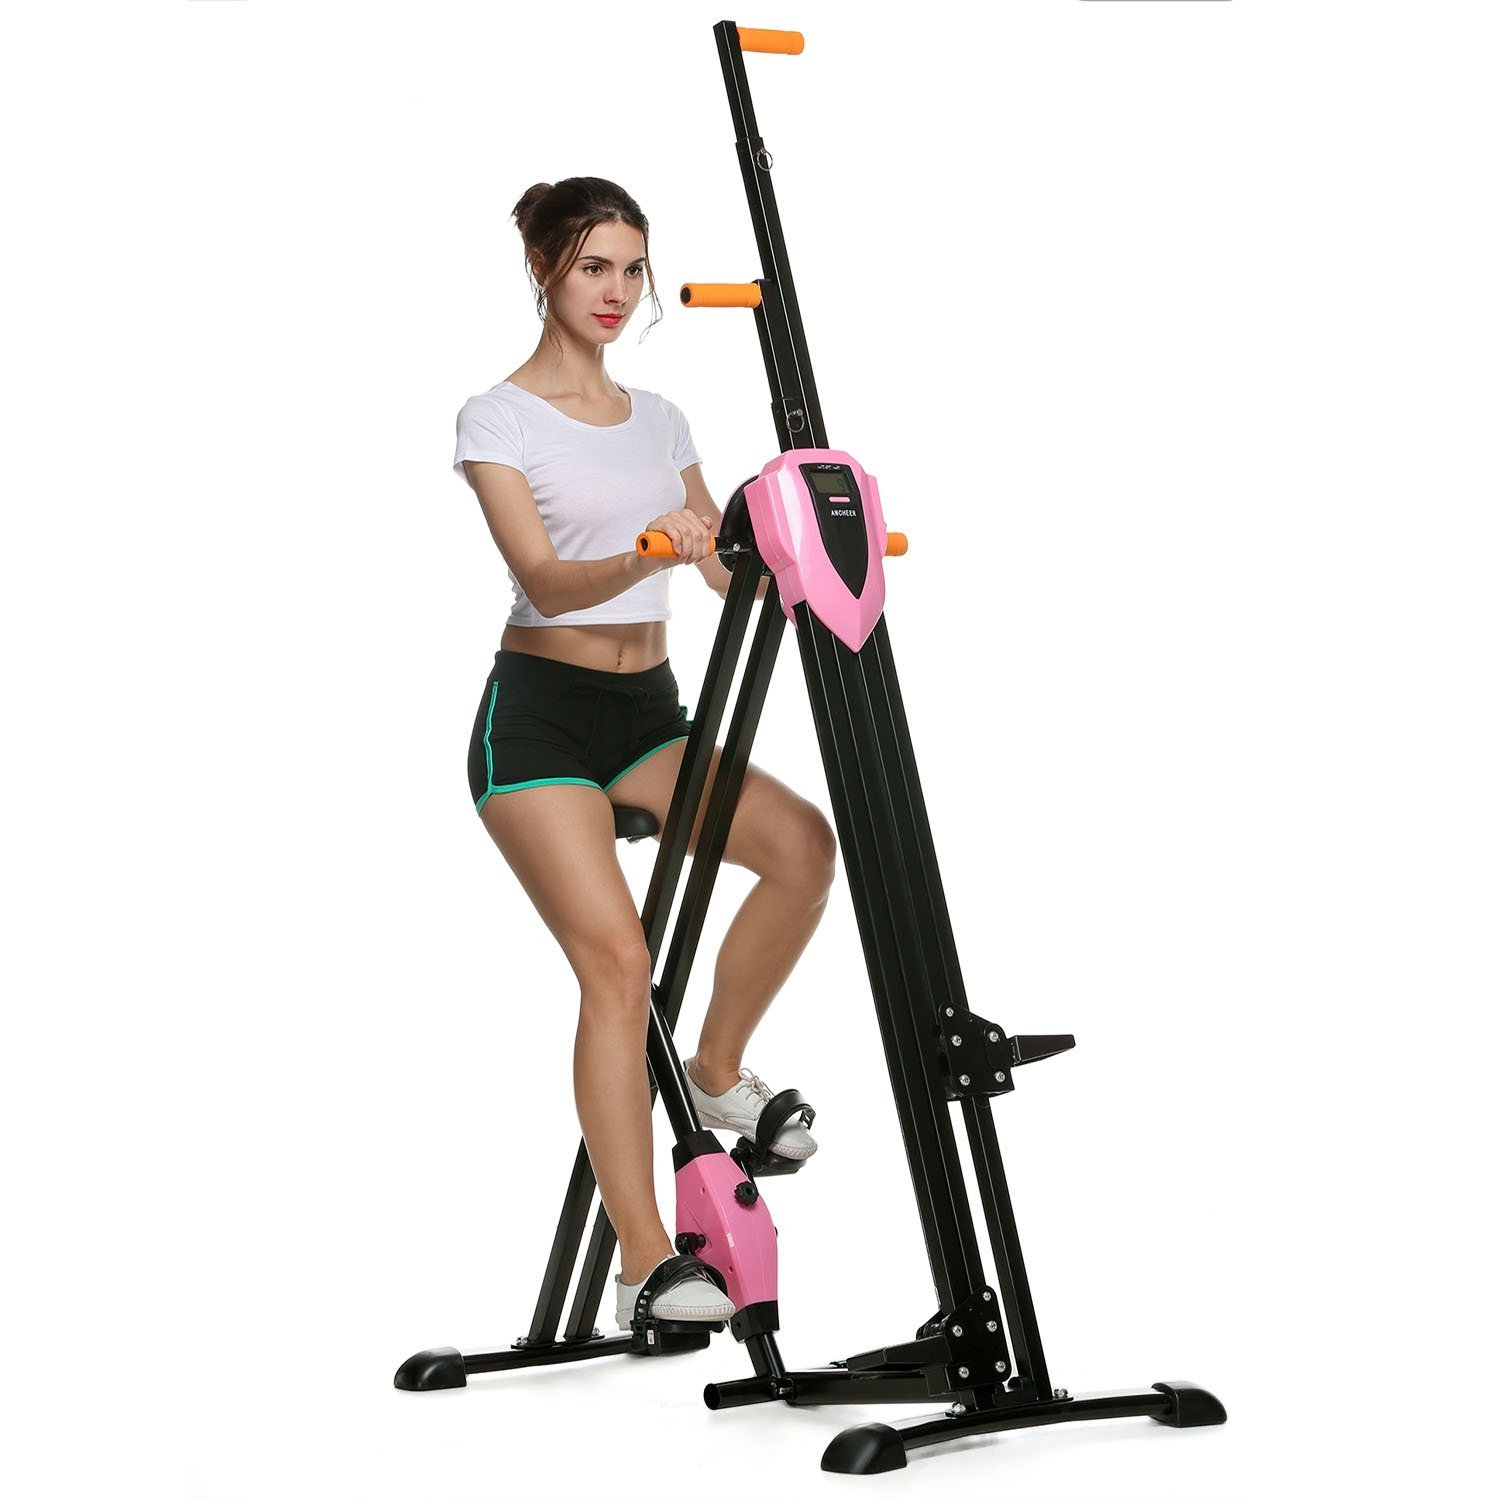 climber exercise equipment